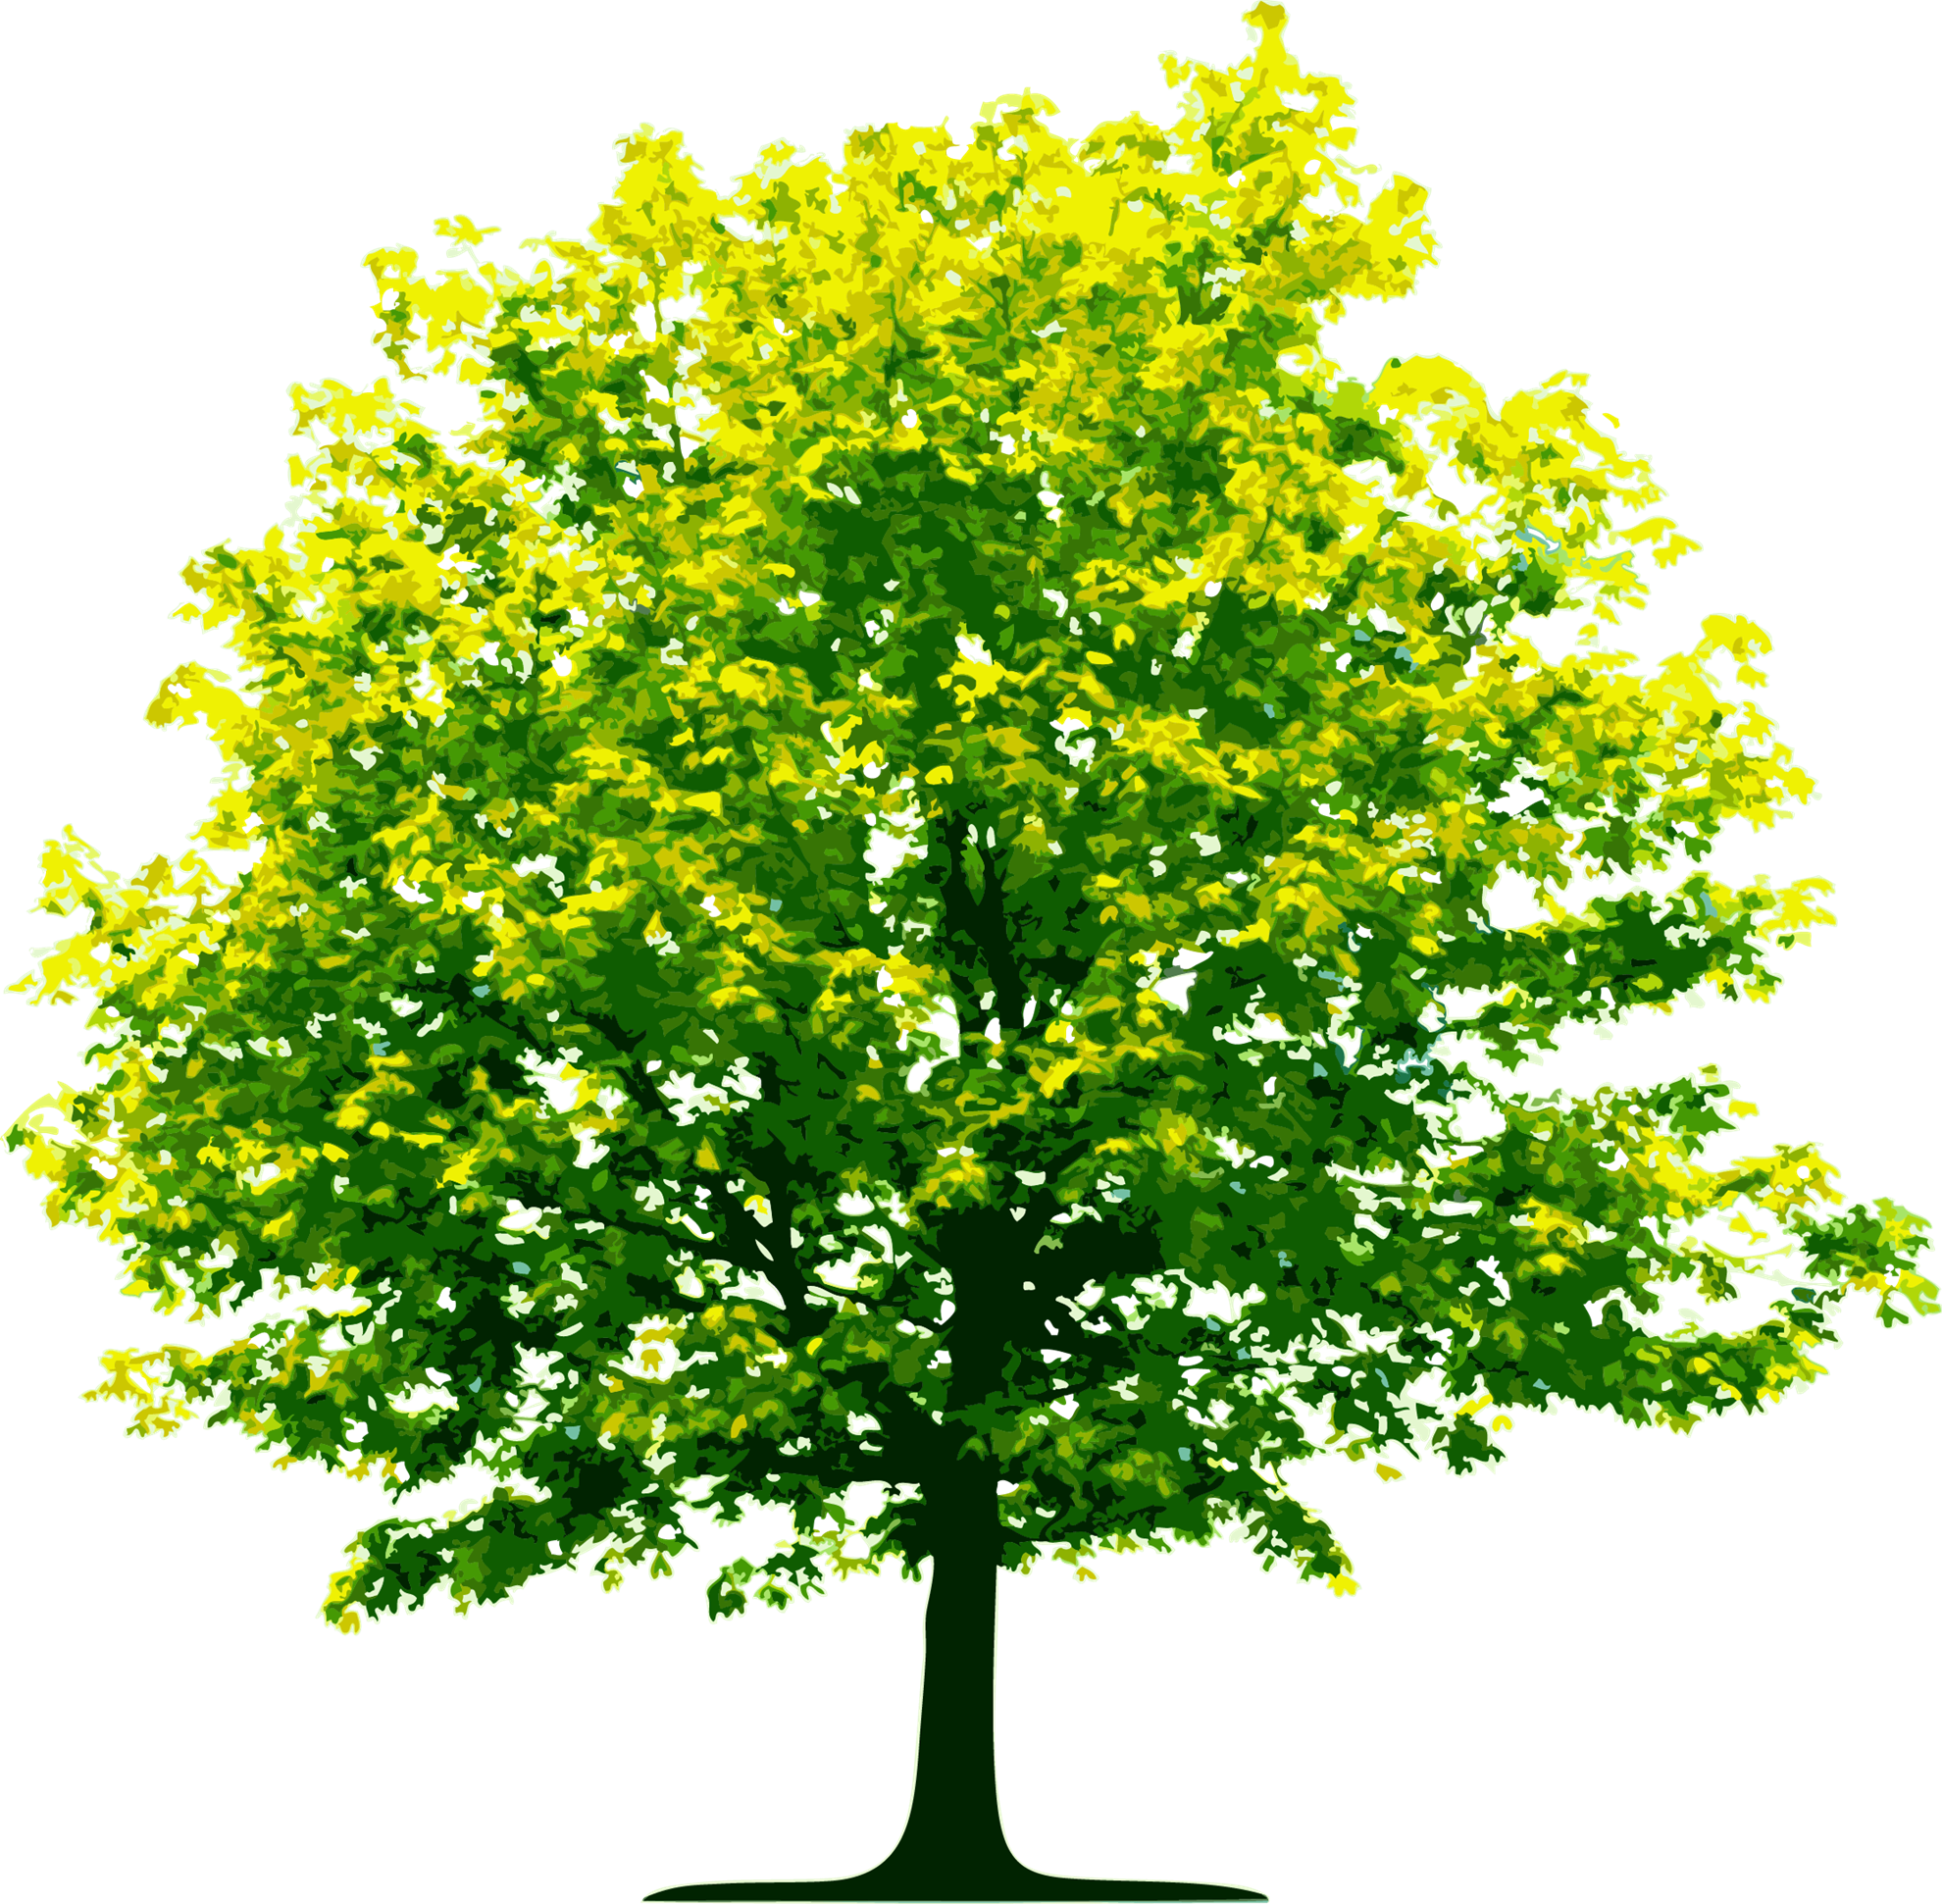 Green drawing tree. June attendance rotary club